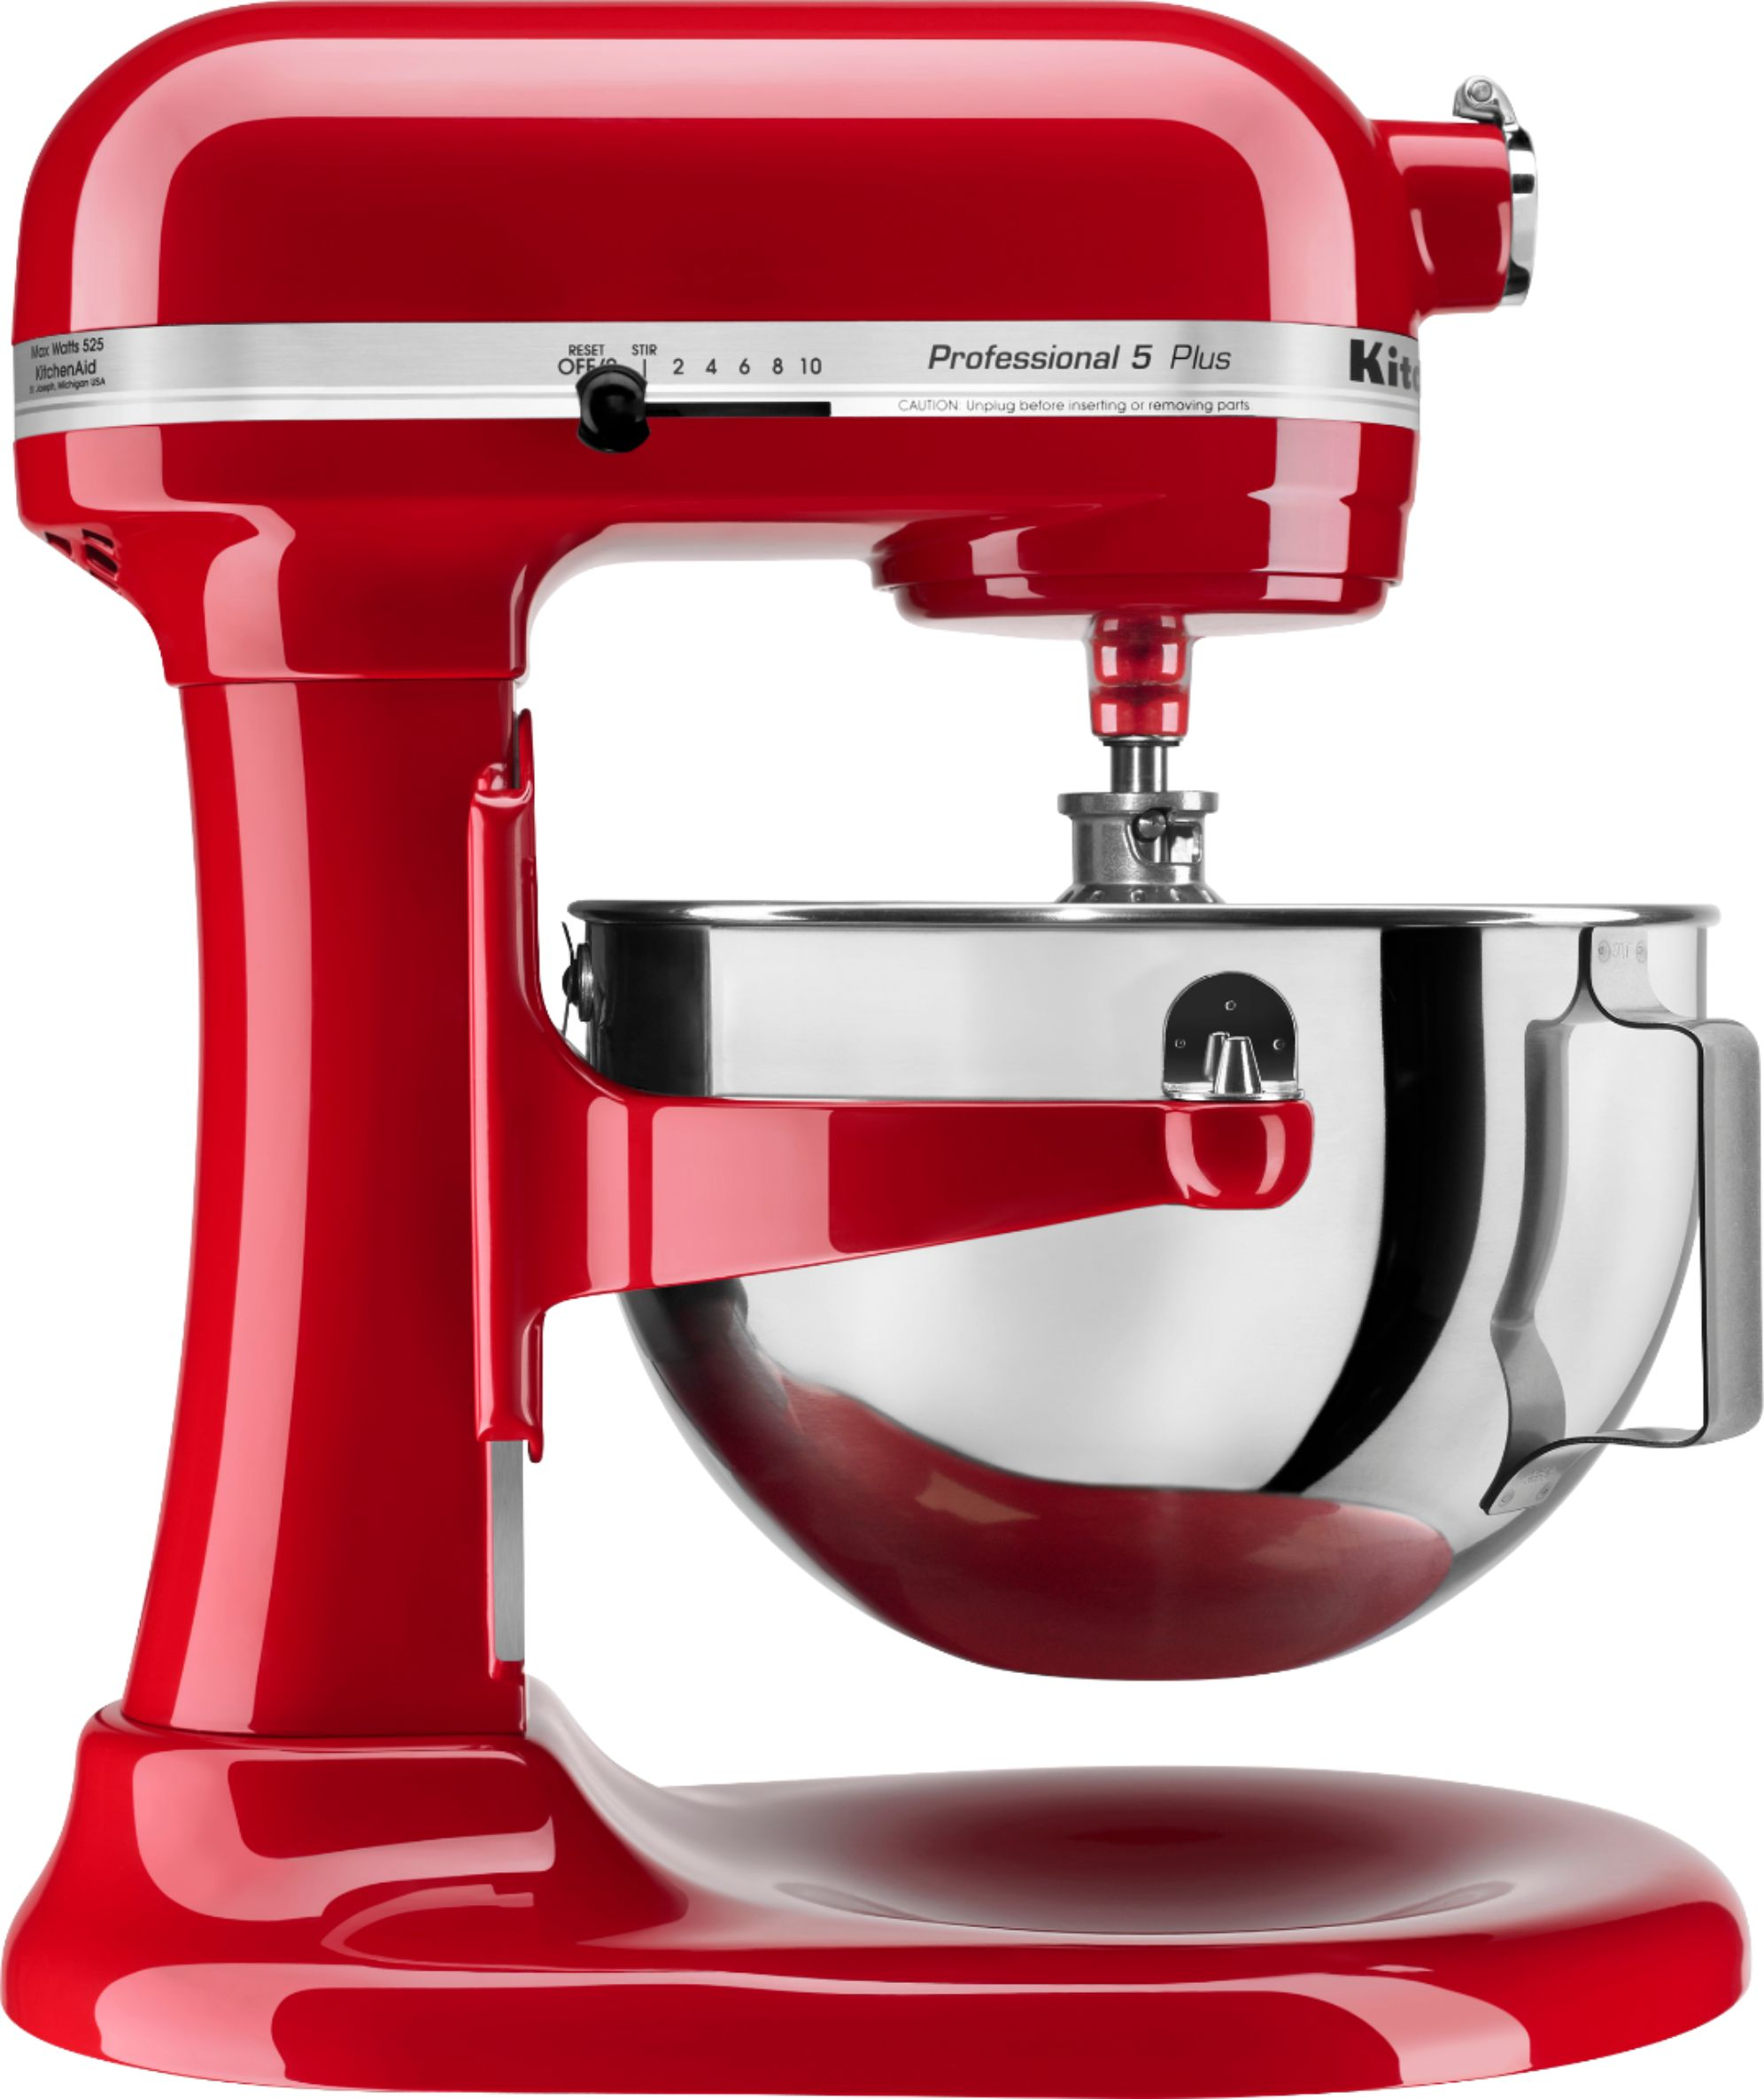 Küchenmaschine Bosch Vs Kitchenaid Kitchenaid Kv25g0xer Professional 500 Series Stand Mixer Empire Red